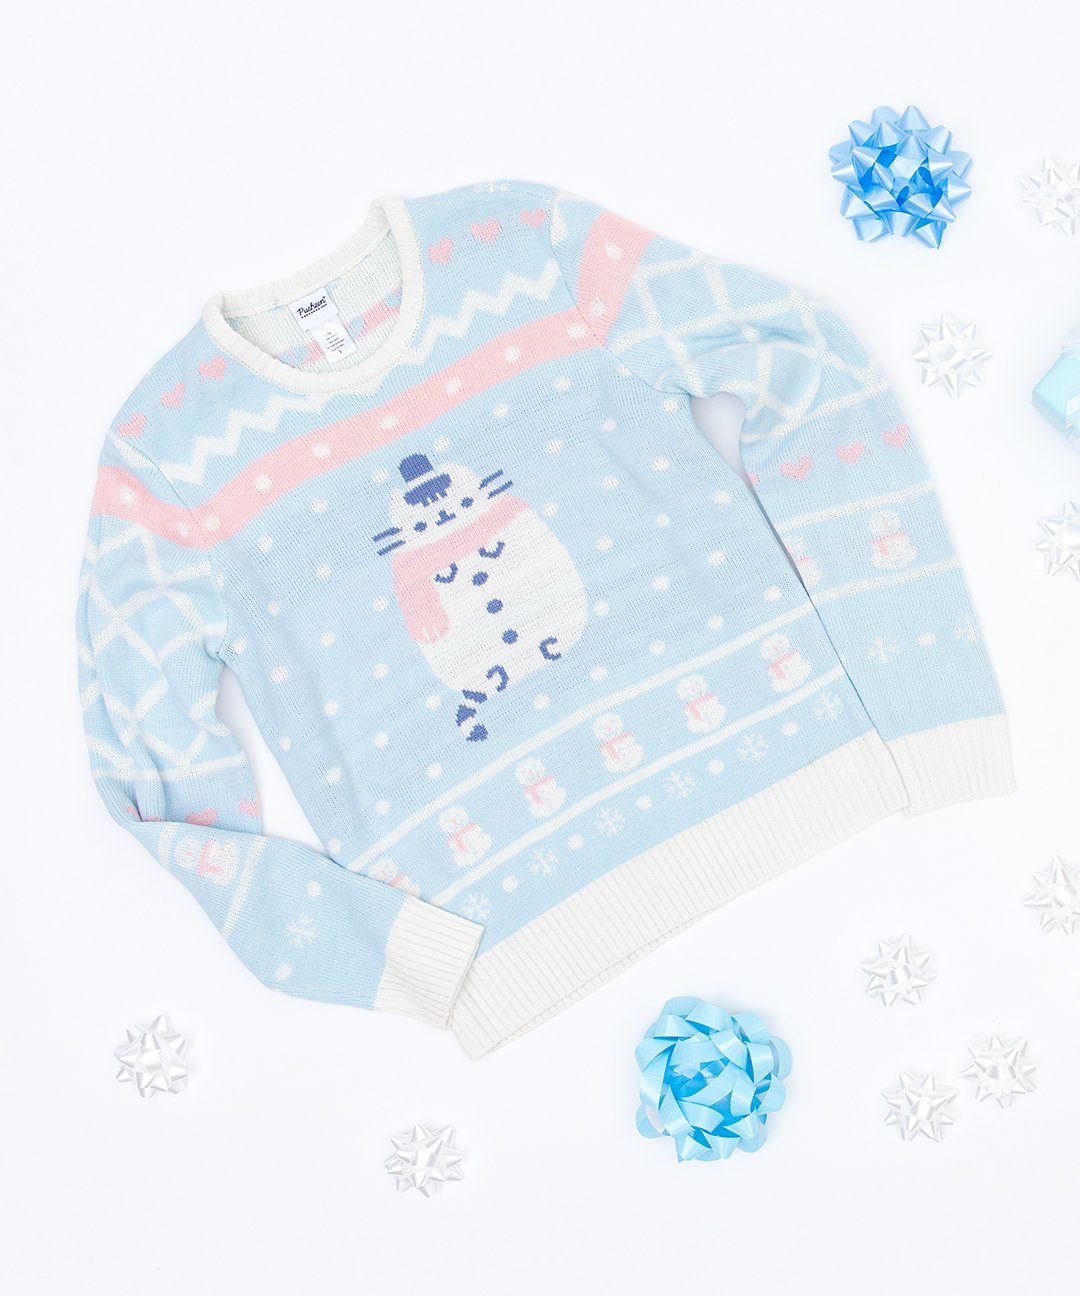 Baby blue sweater with Pusheen cat